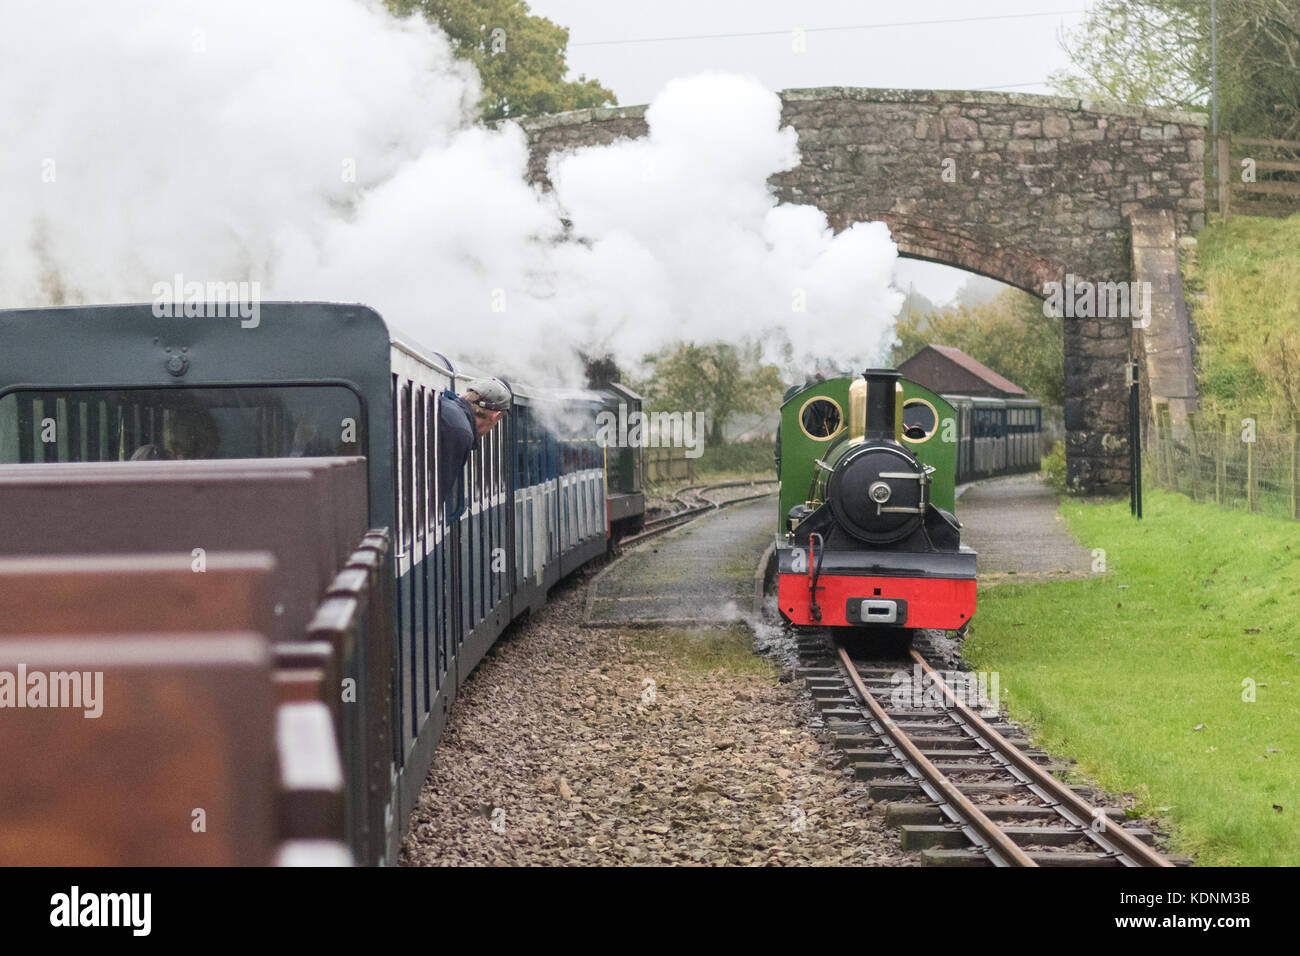 Ravenglass and Eskdale Steam Railway, Cumbria, England - steam and diesel engines pass on the 15' gauge railway - Stock Image